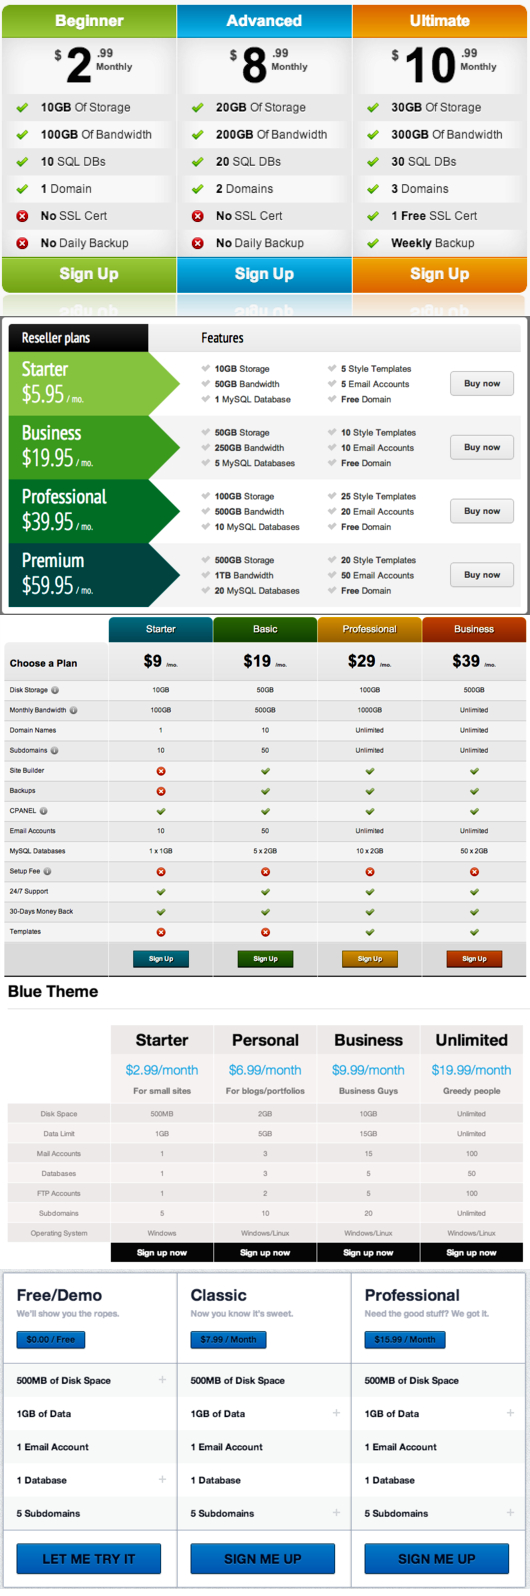 Pricing Table Ready! WordPress plugin allow you generate and manage CSS pricing table or comparison table with table generator in the easy way.